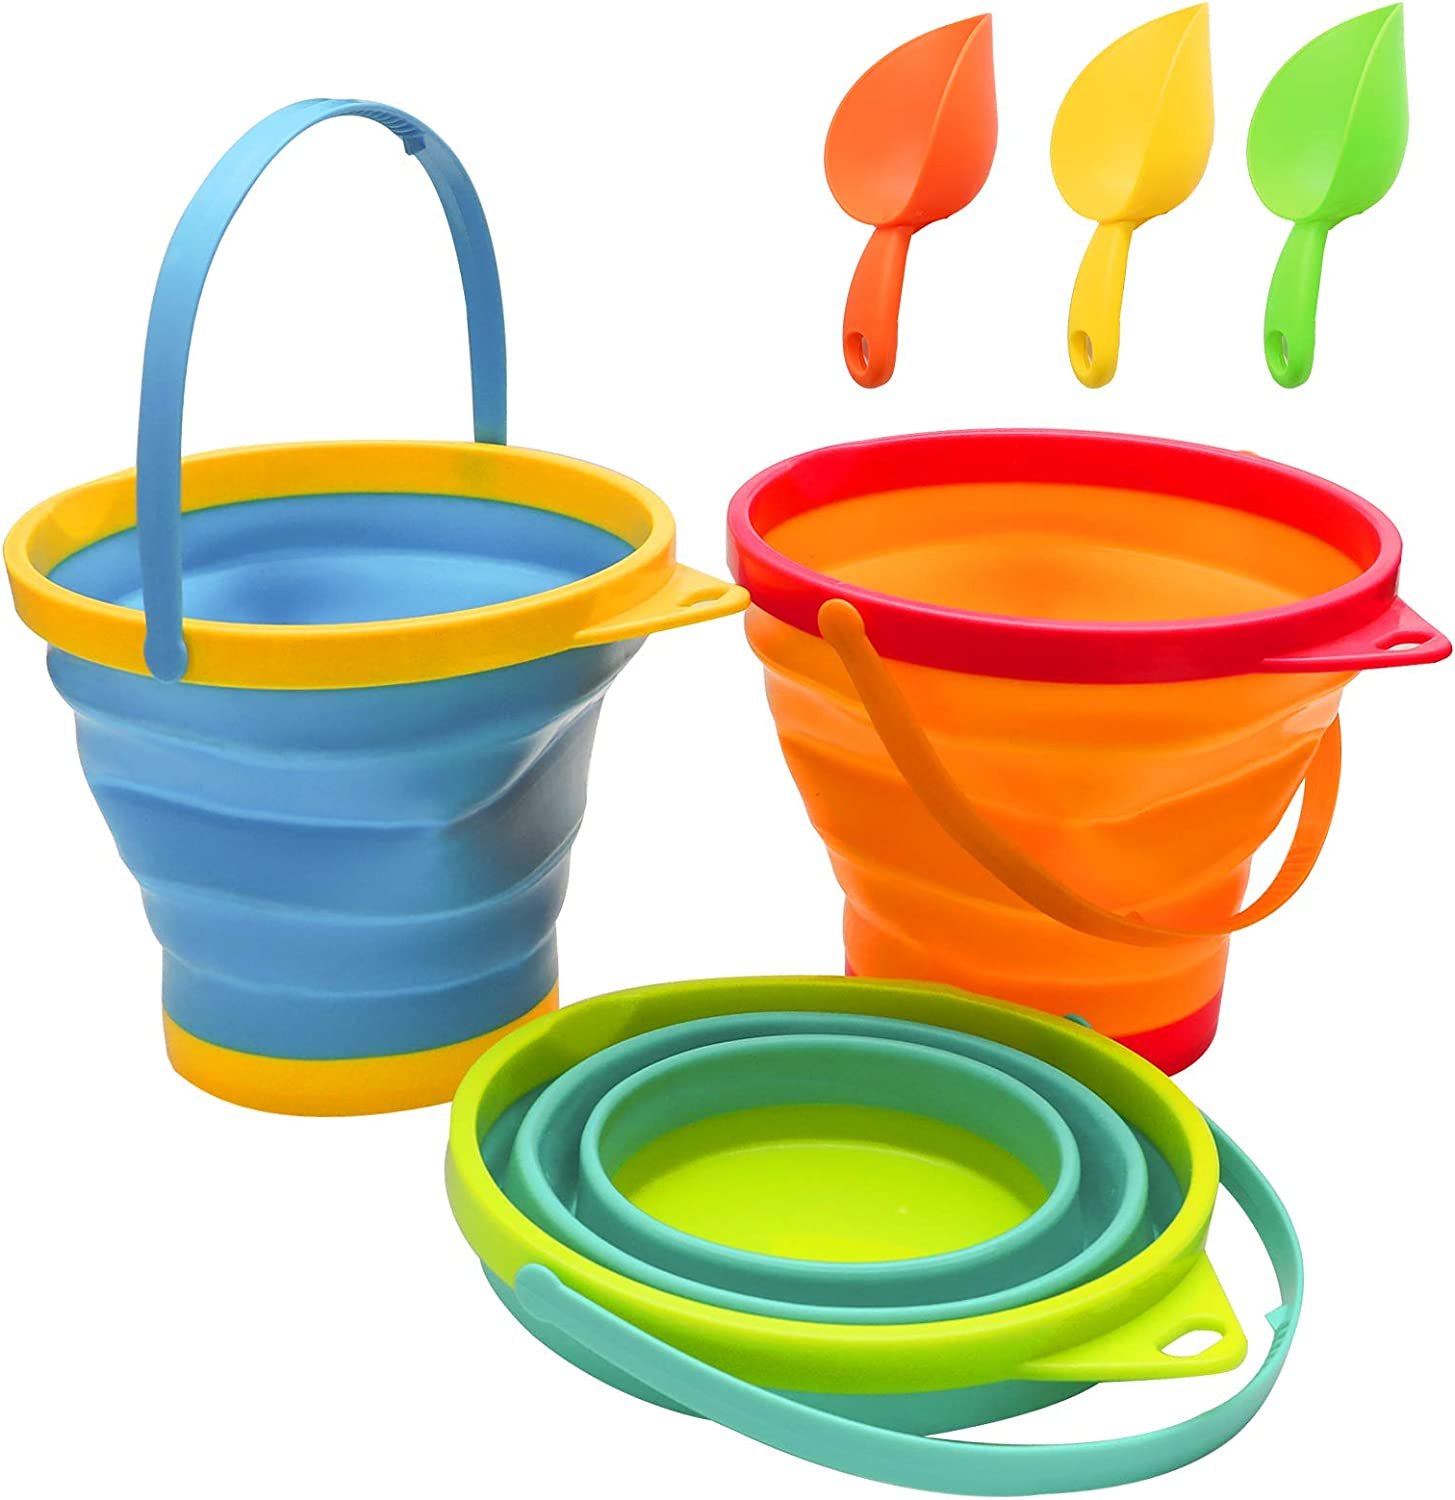 Holady Collapsible Buckets,Sand Buckets and Sand Shovels Set for Kids,Foldable Pail Bucket Multi Purpose for Beach, Camping Gear Water and Food Jug, Dog Bowls--2.5 L(3 PCS)